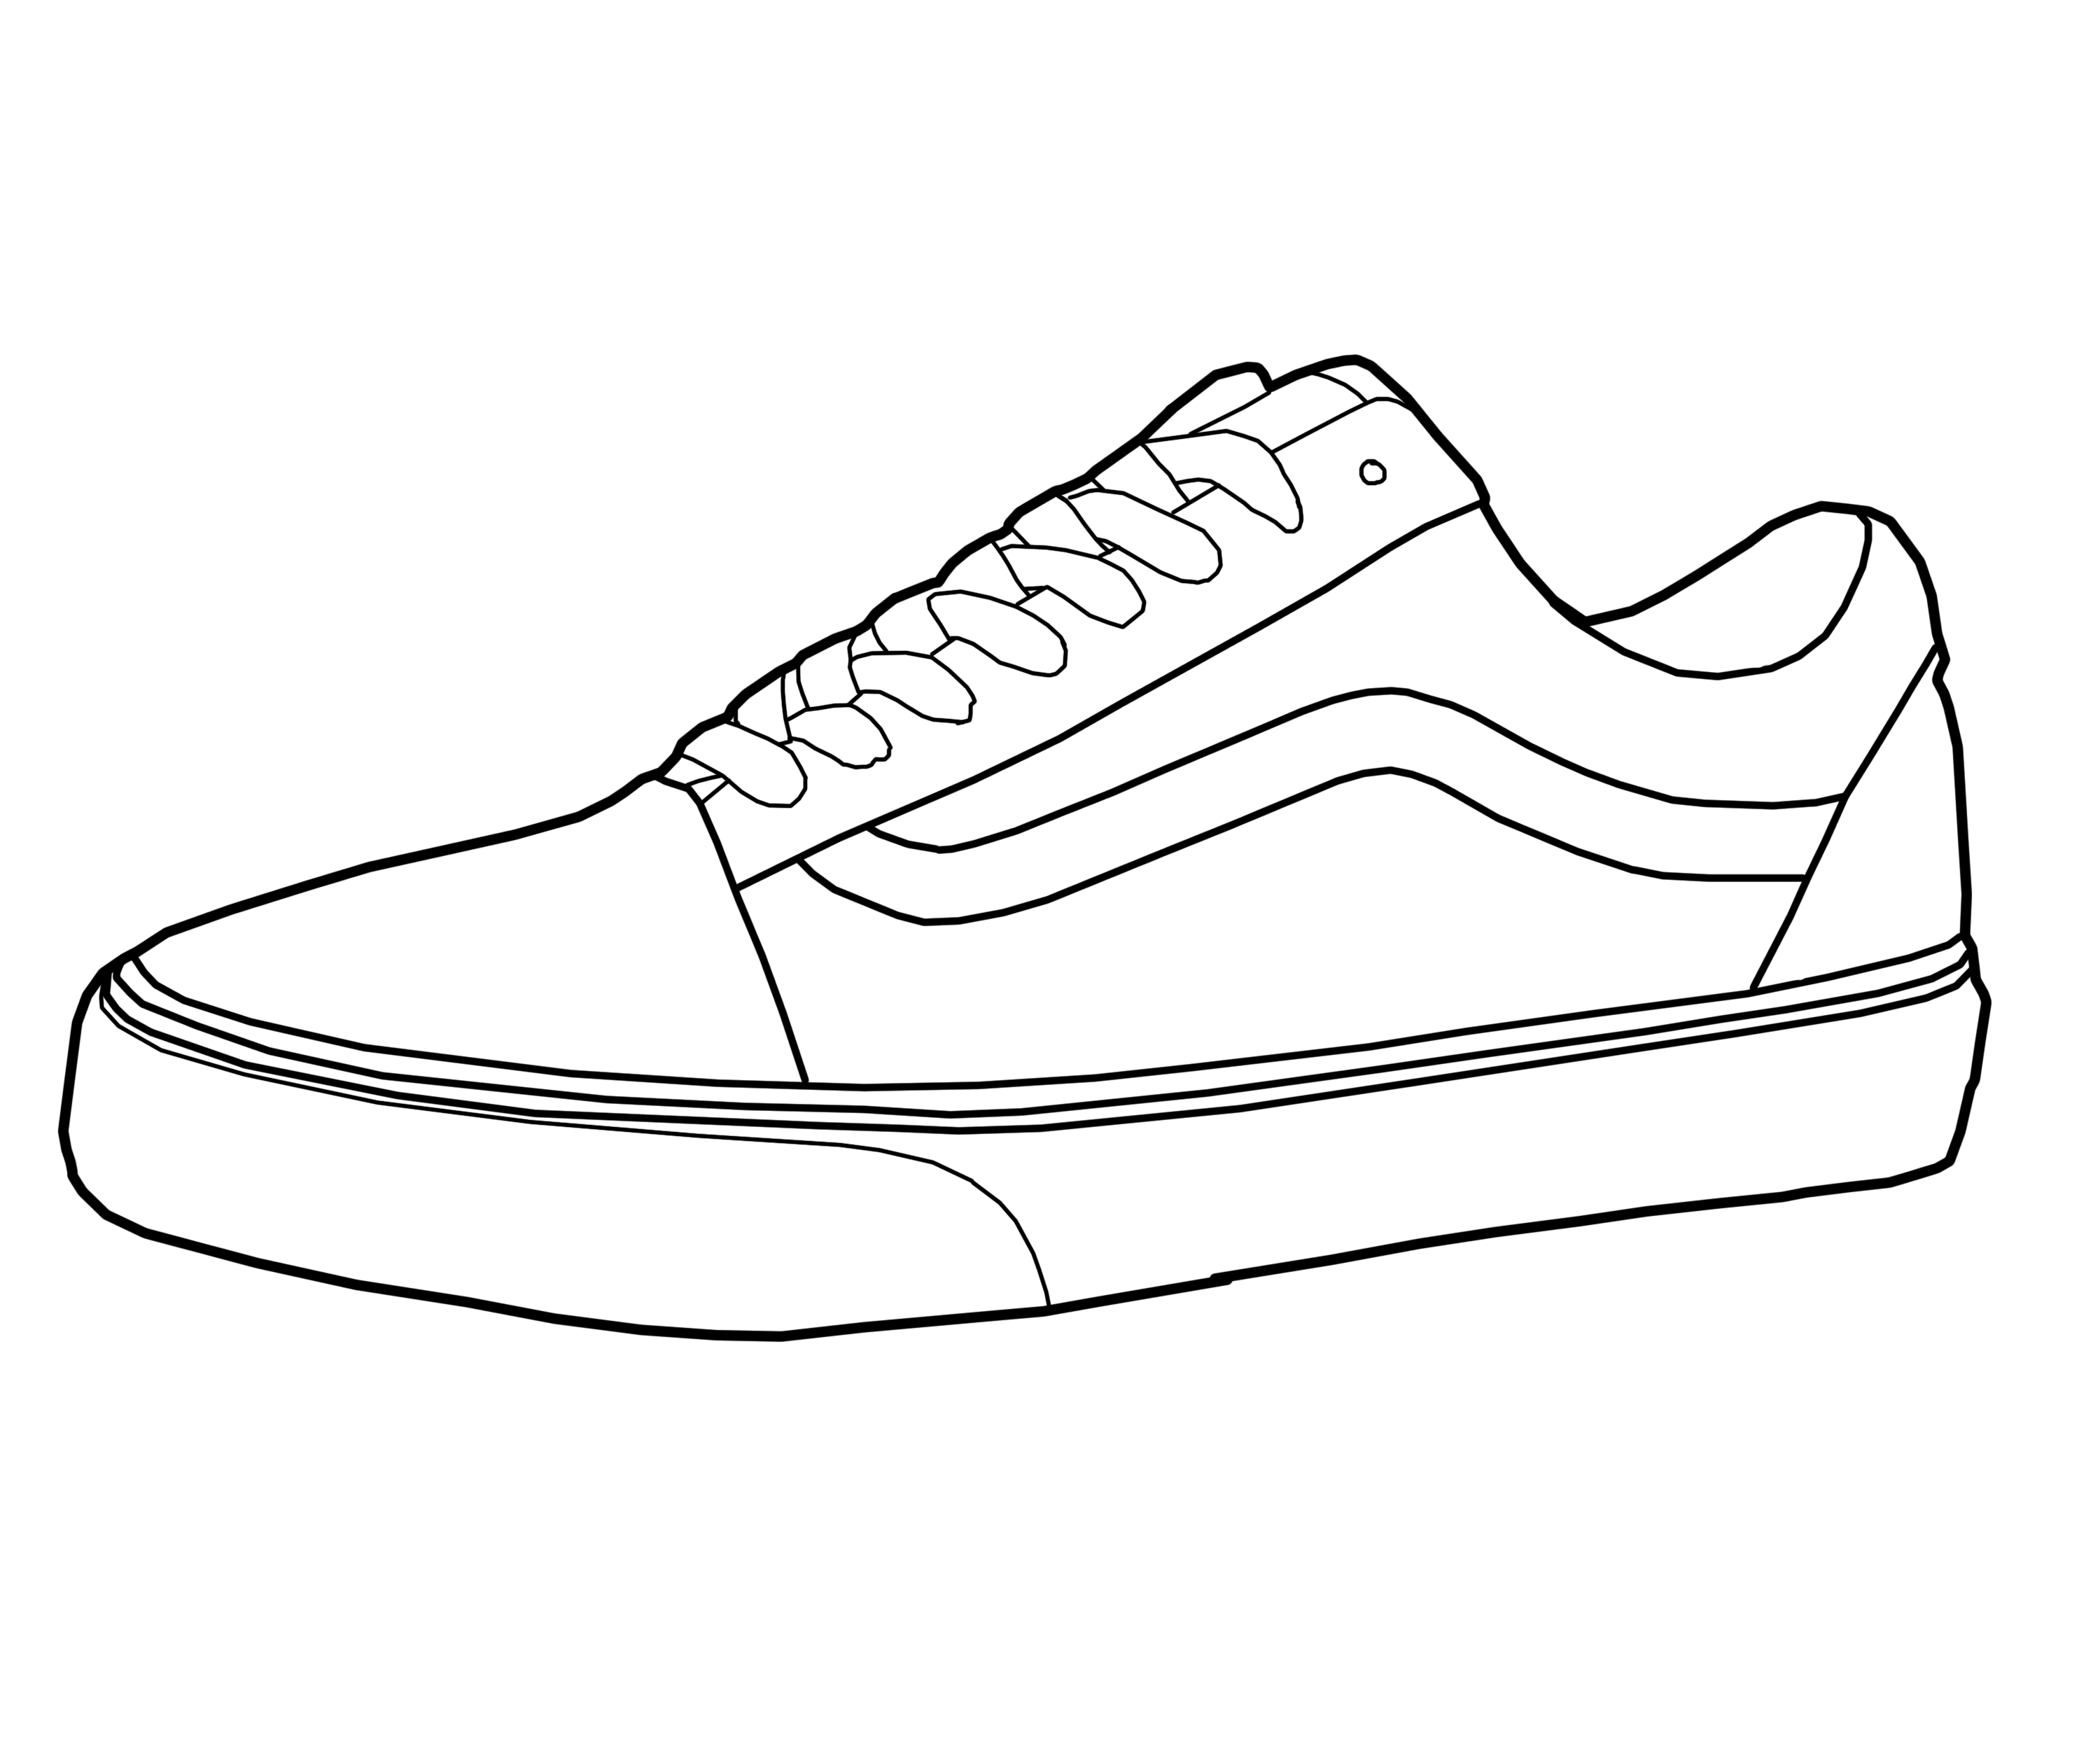 drawing of shoes image image result for pair of converse illustration dibujo drawing of shoes image